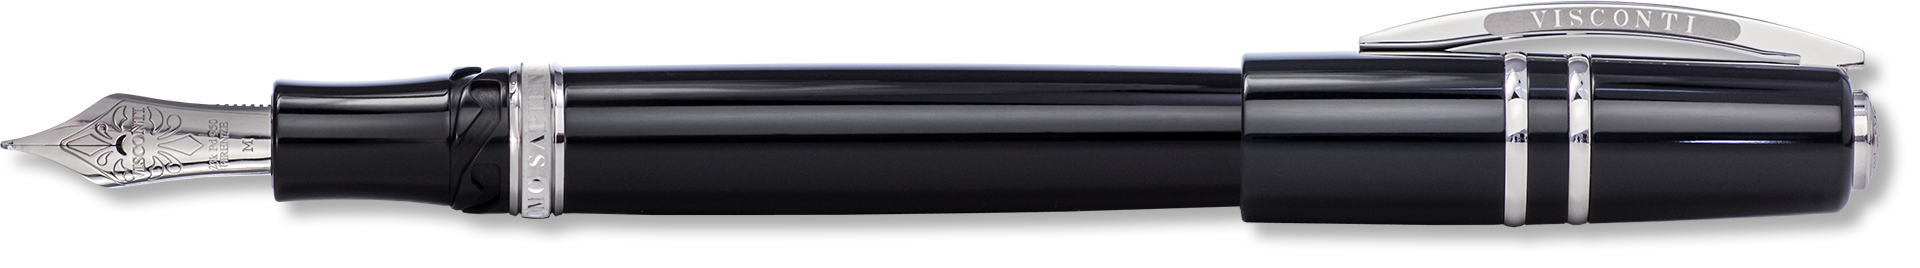 Visconti Elegance Black Polished Resin Fountain Pen